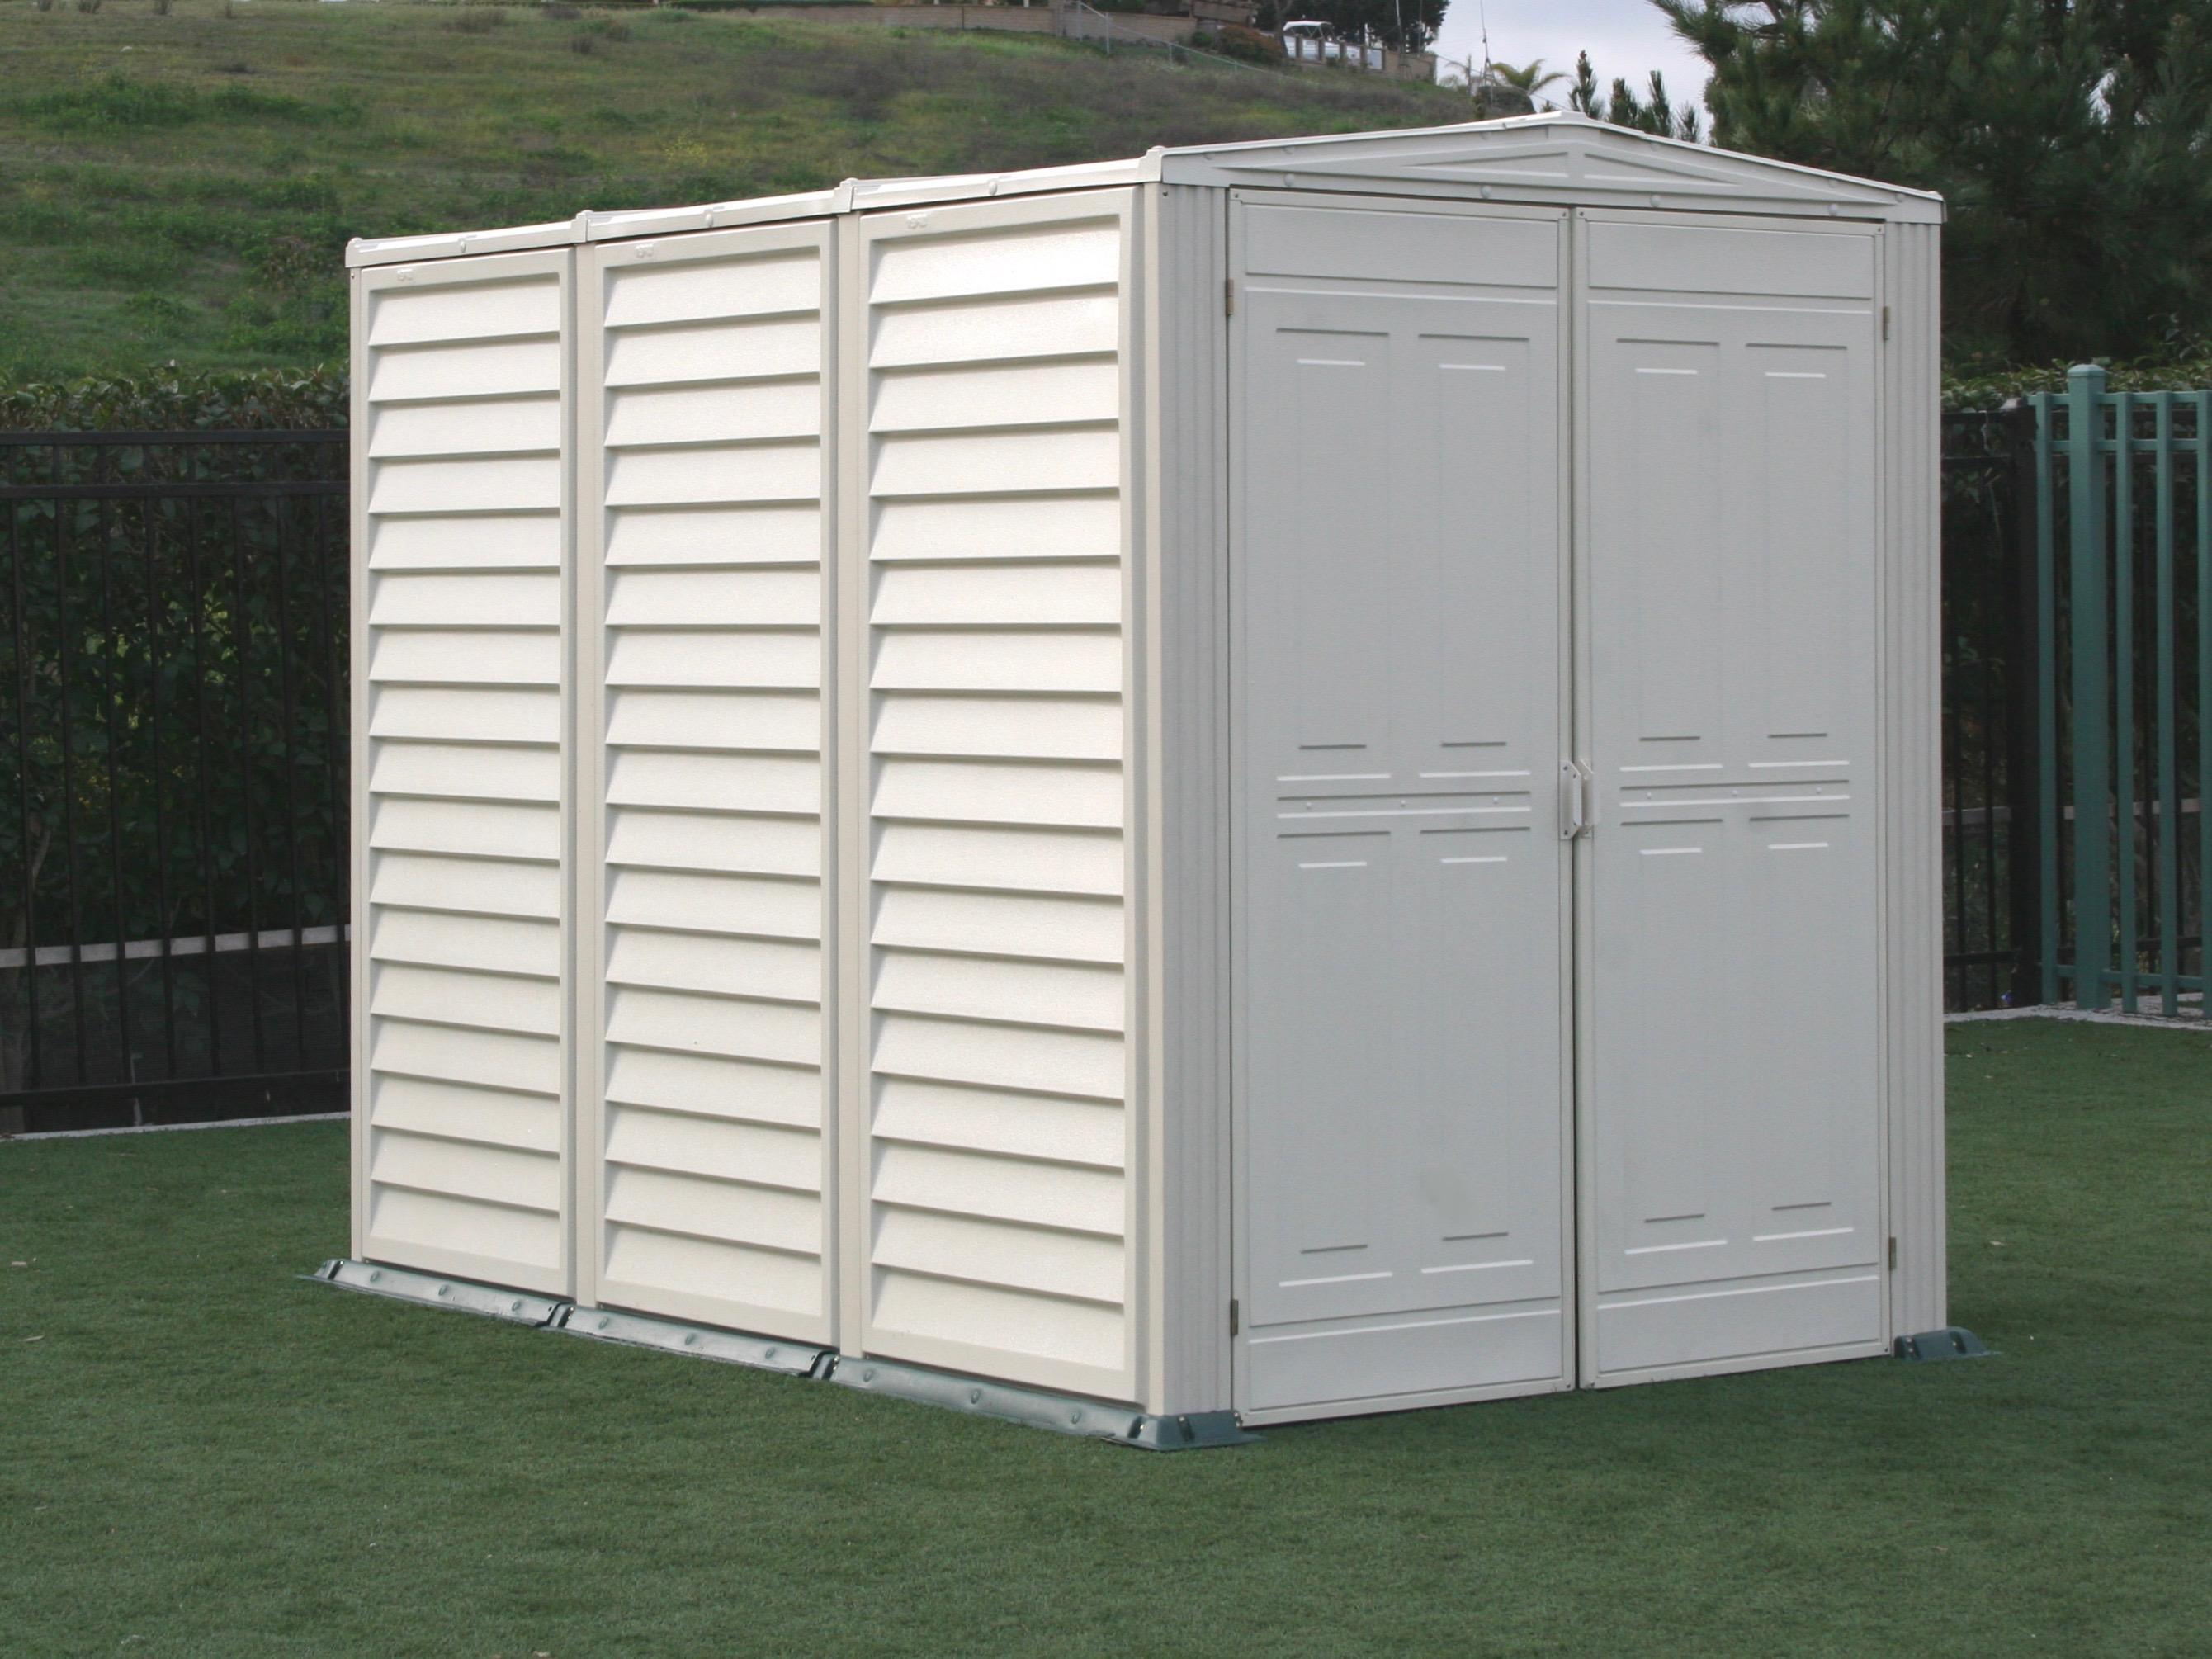 Duramax 00882 Yard Mate 5x8 Storage Shed on Sale with Free